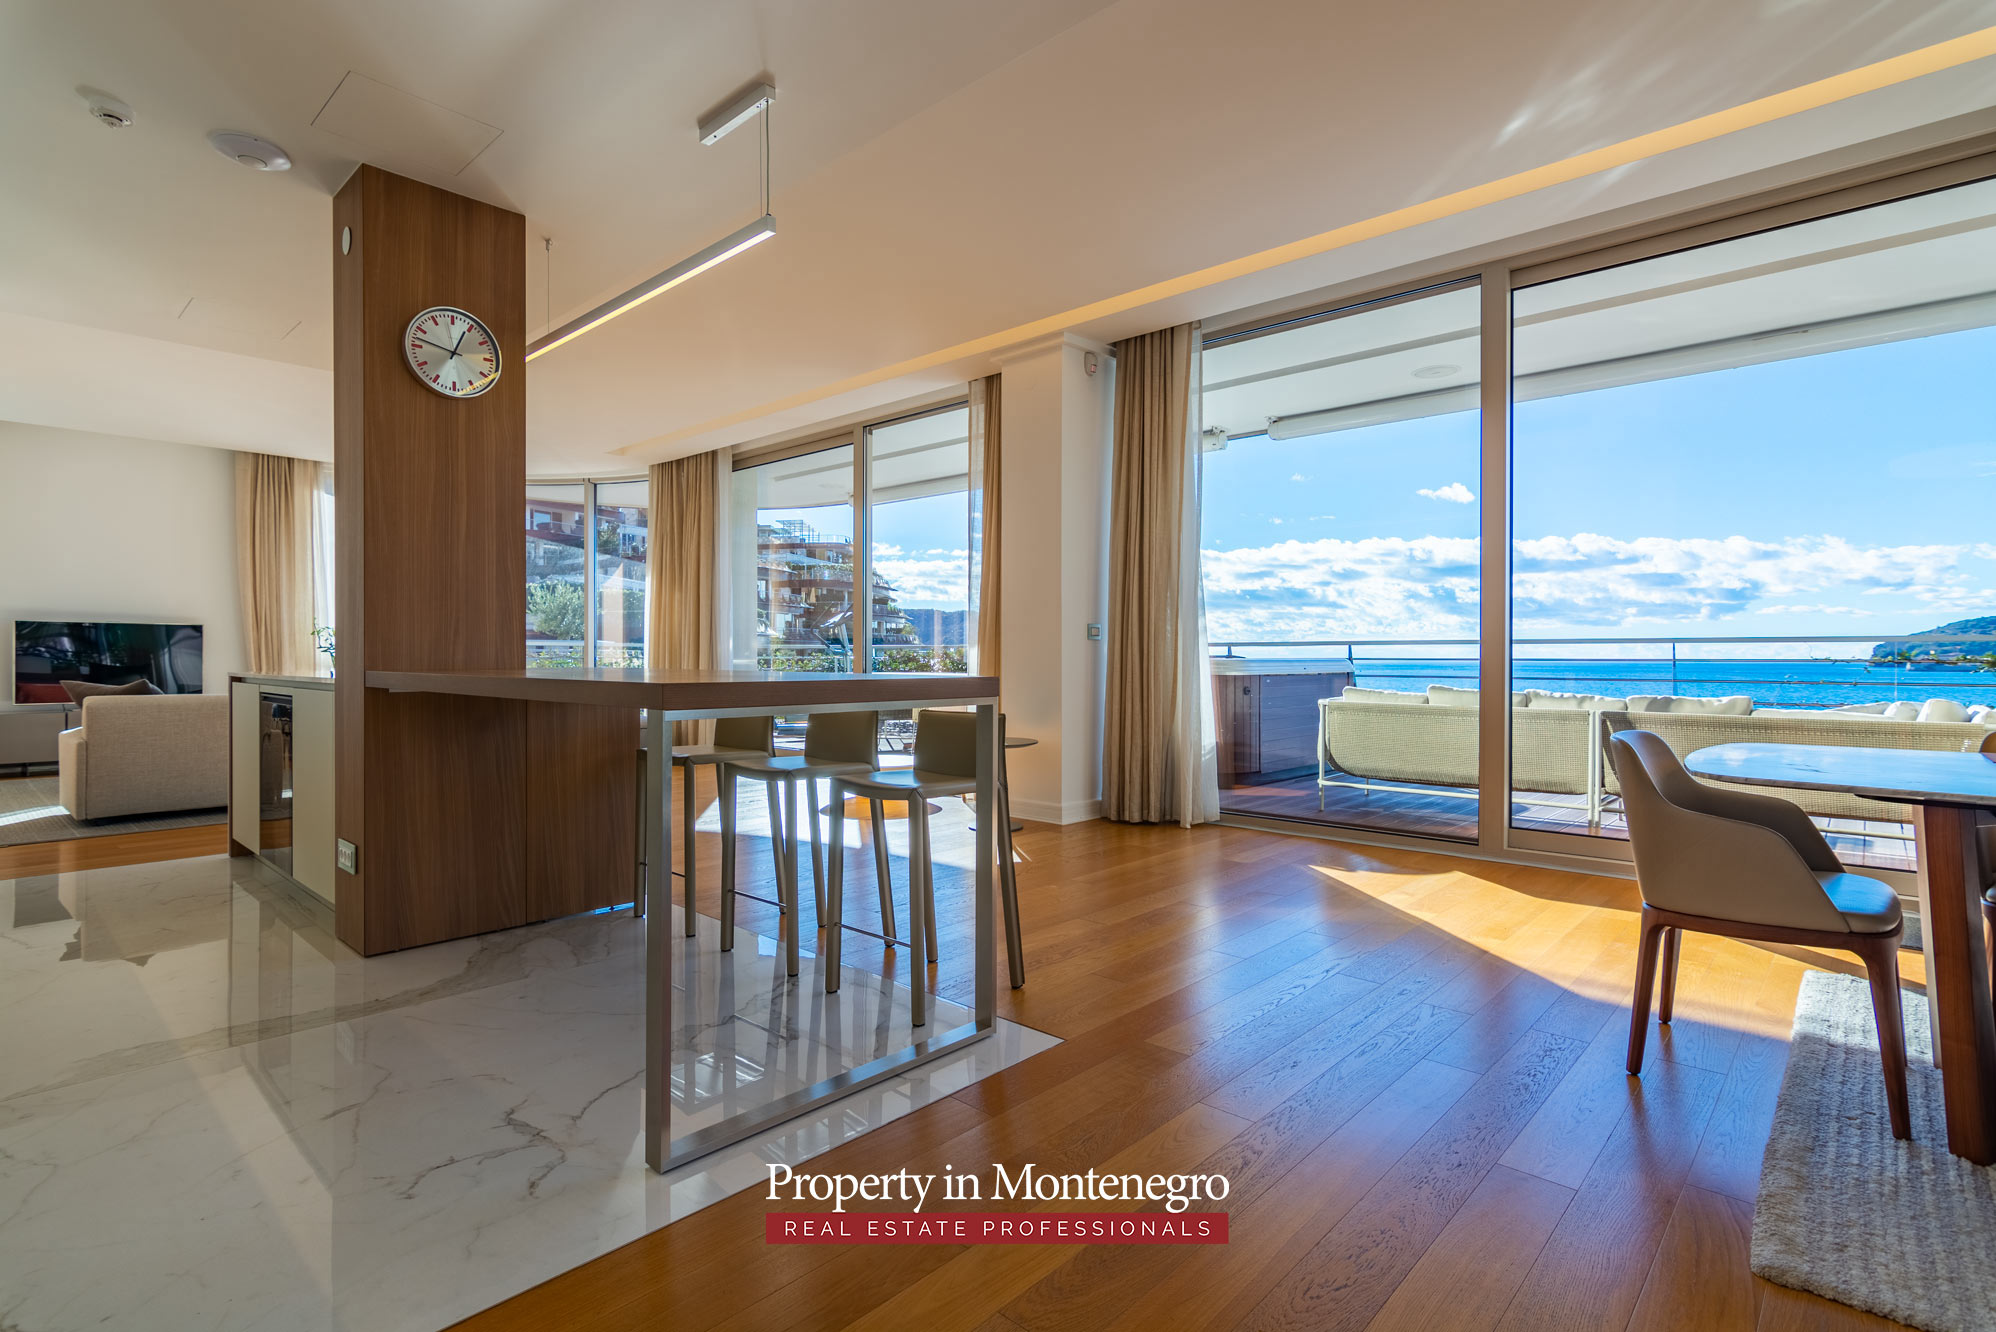 Waterfront penthouse for sale in Budva